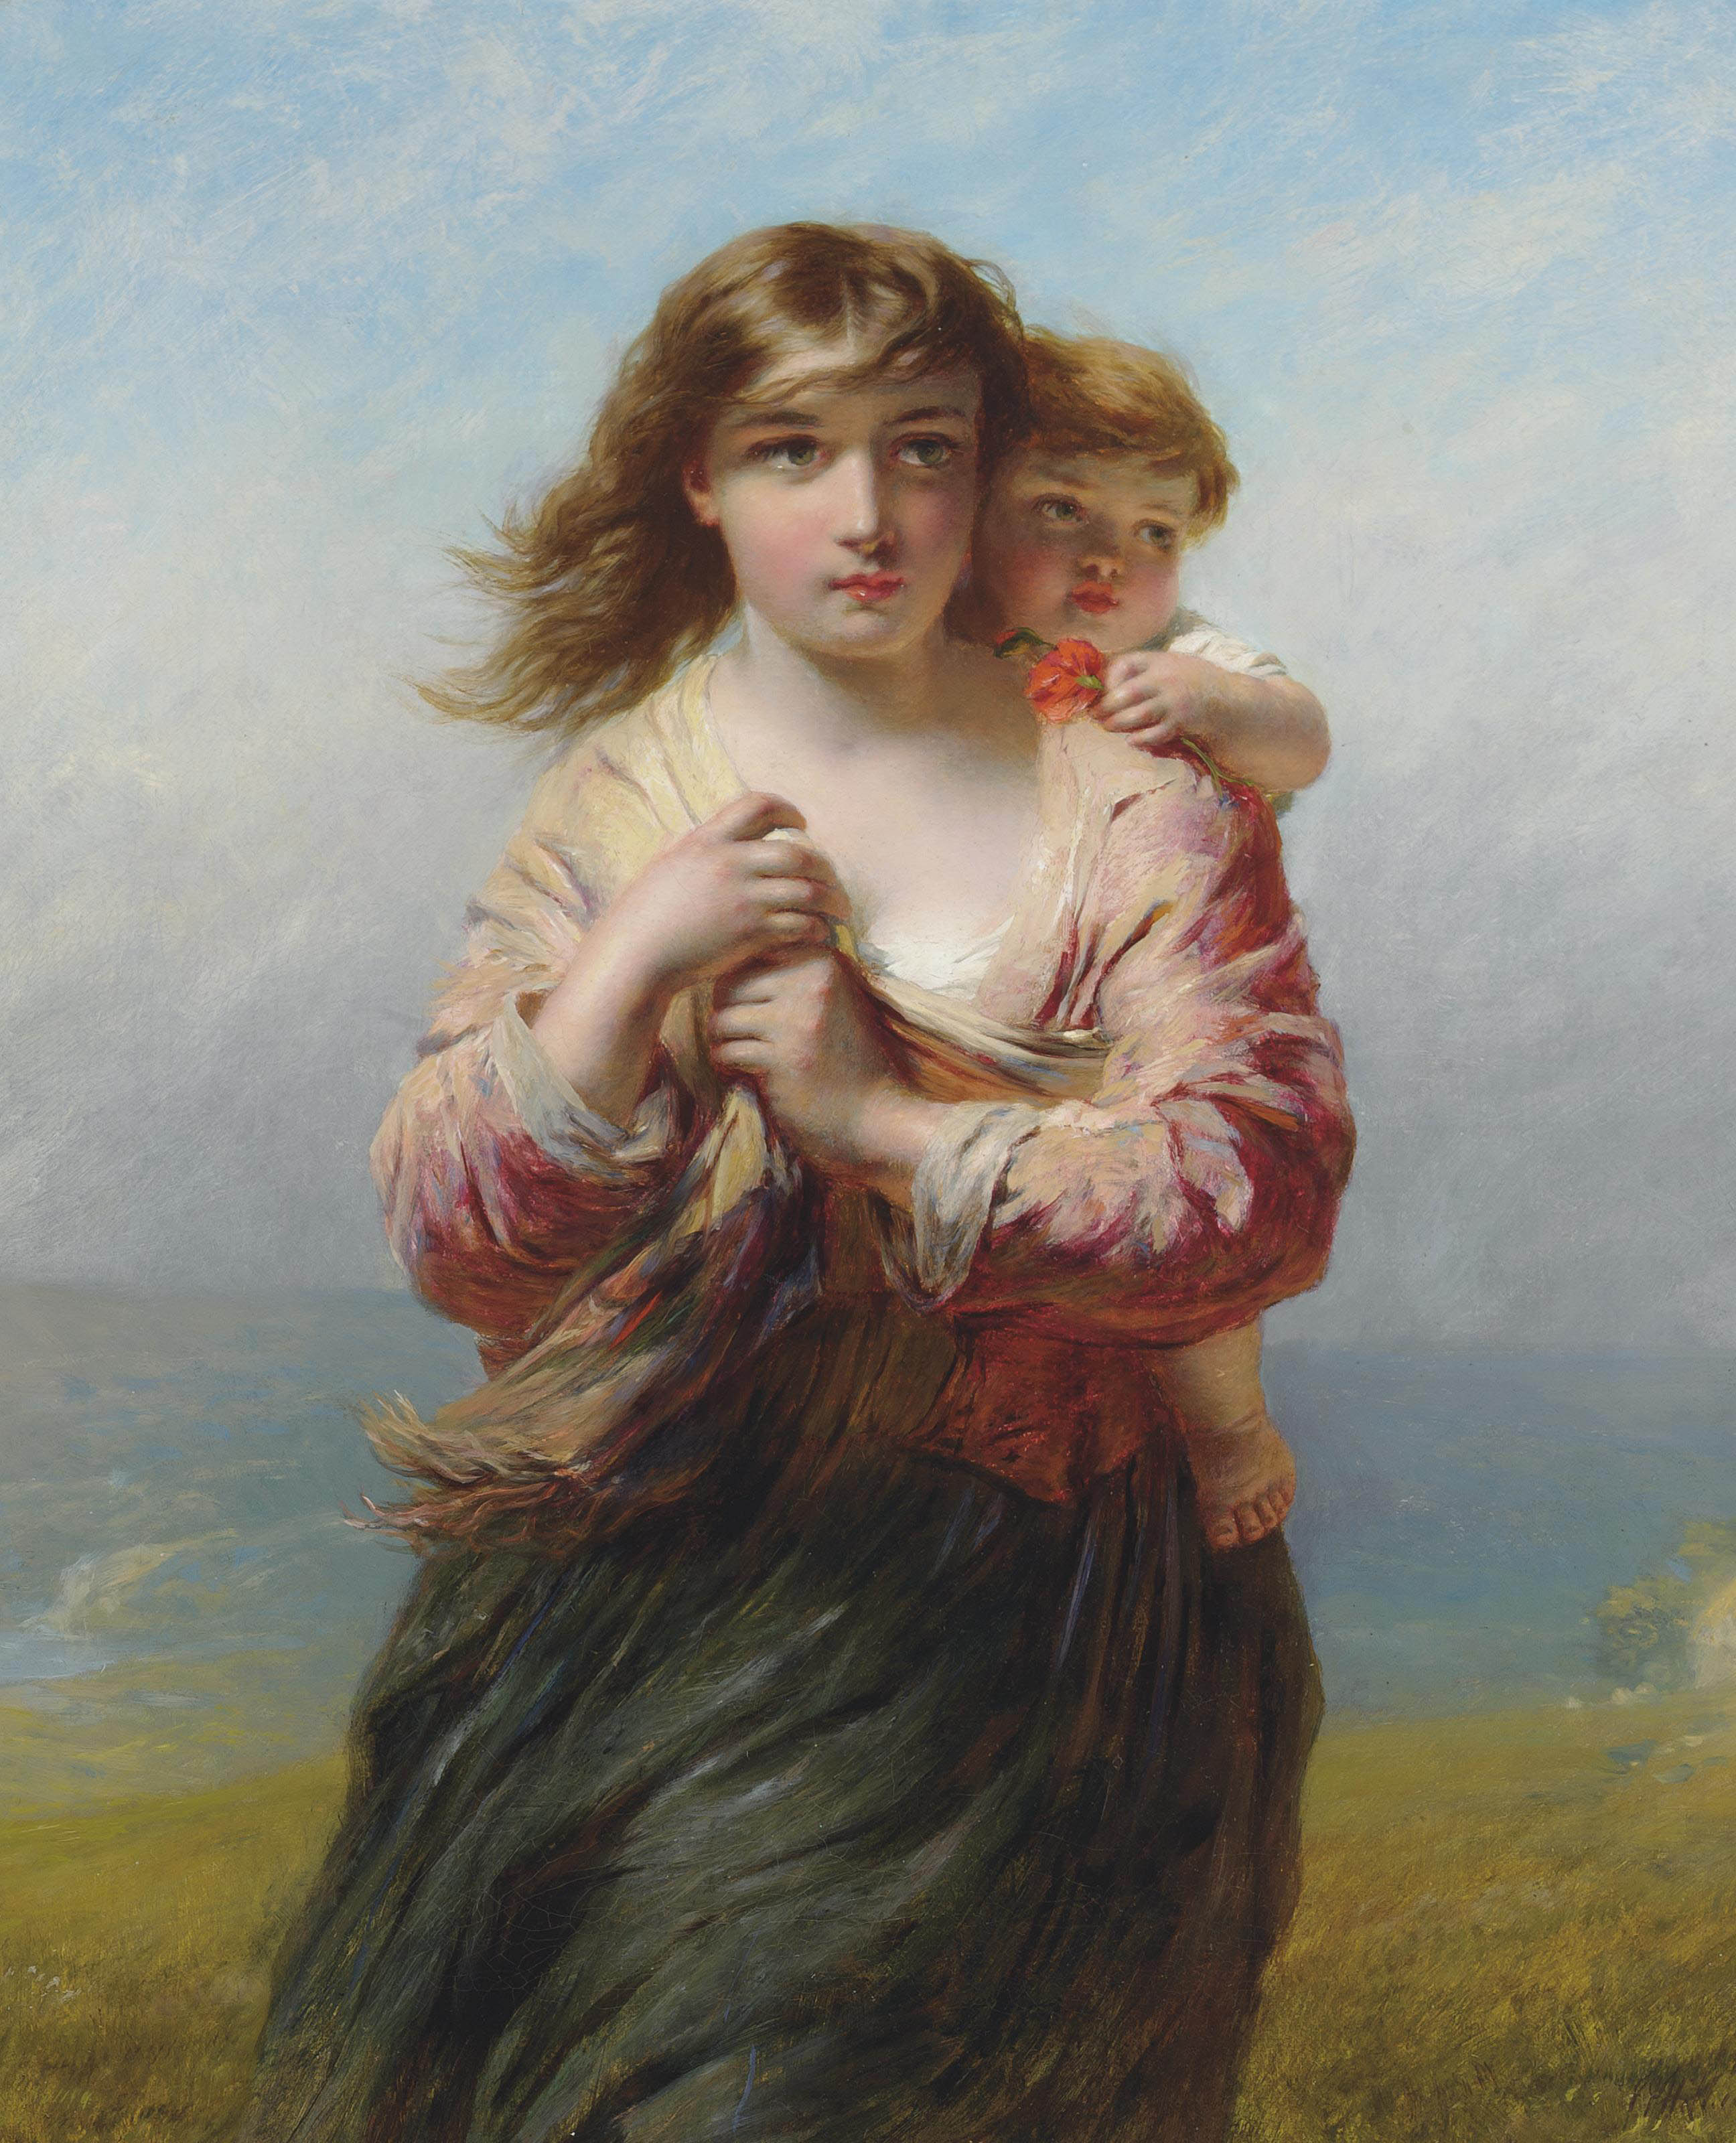 Mother and child on a hillside overlooking the sea